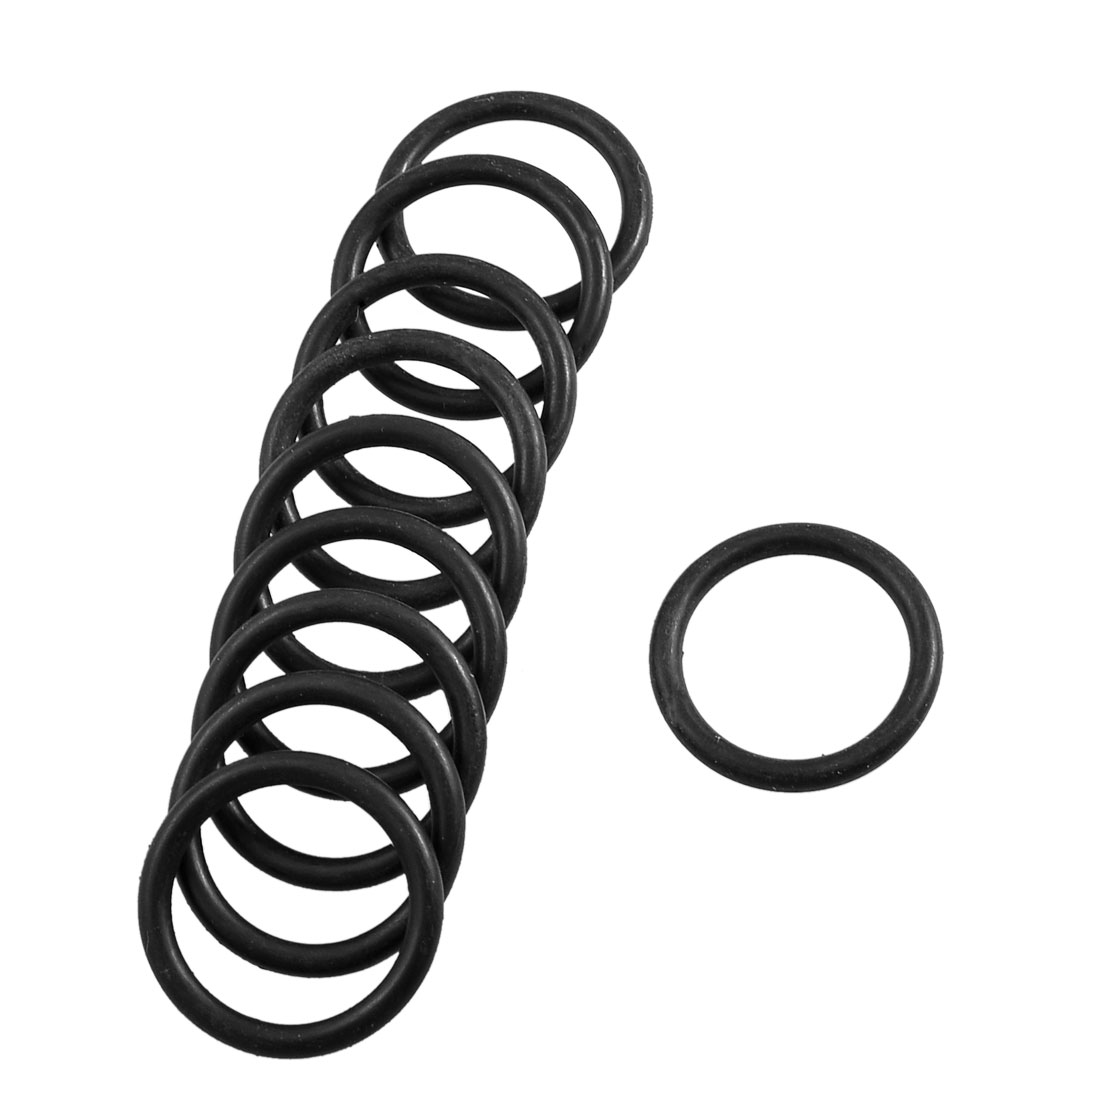 10 Pcs 31mm x 24mm x 3.5mm Mechanical Rubber O Ring Oil Seal Gaskets